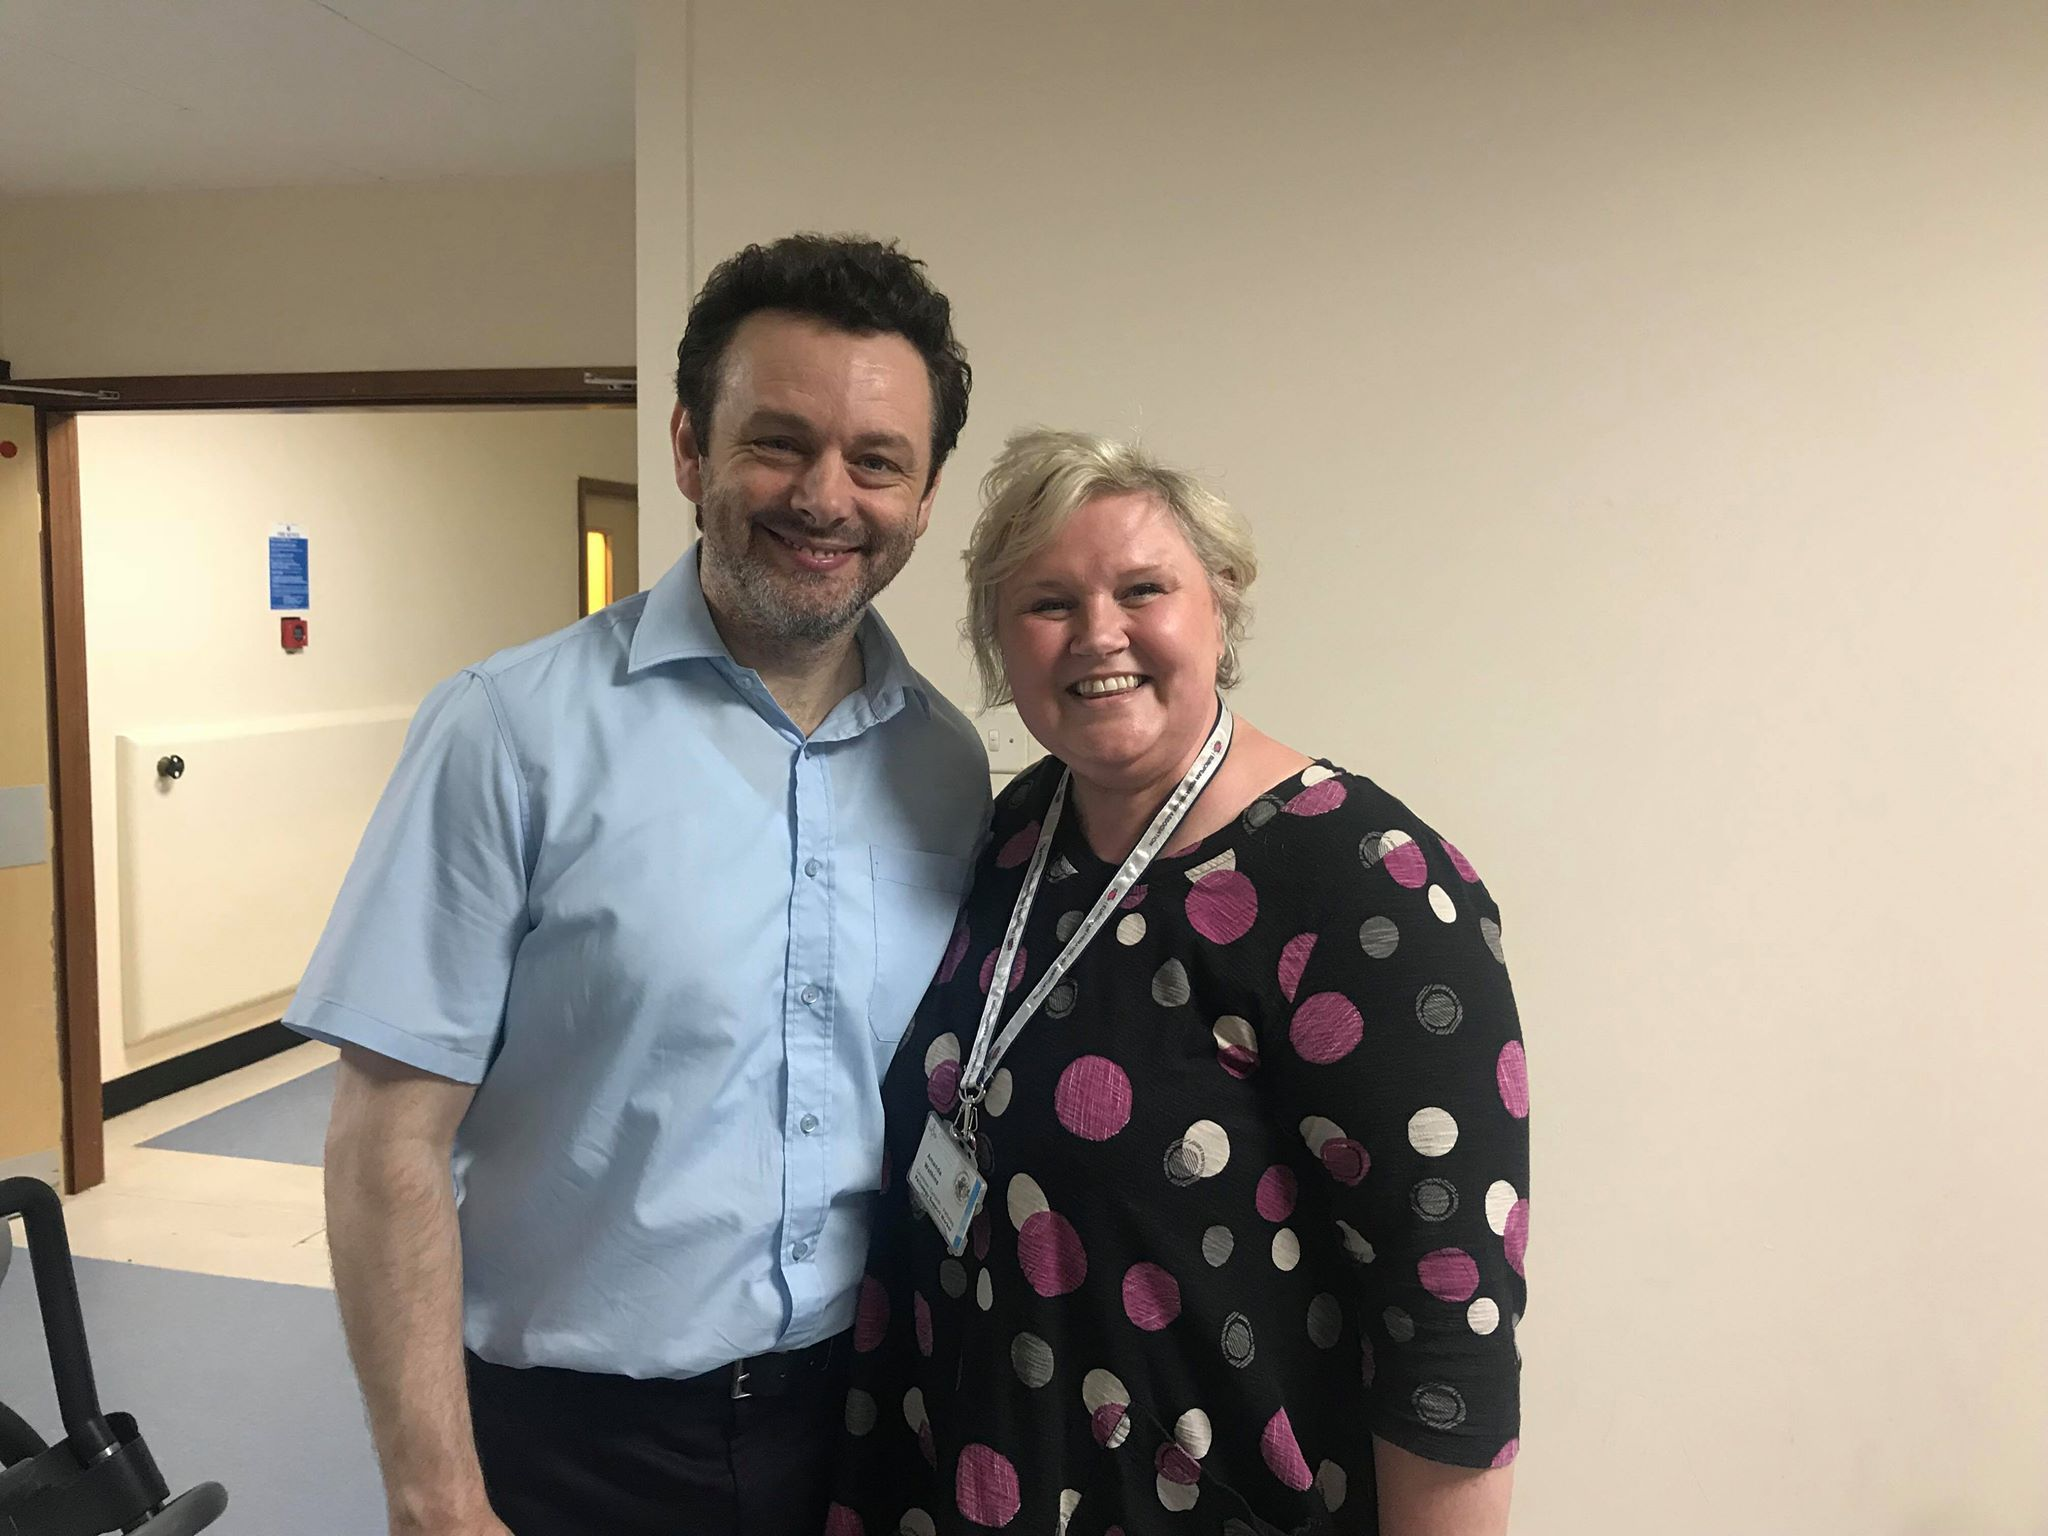 Actor Michael Sheen with Amanda Watkins